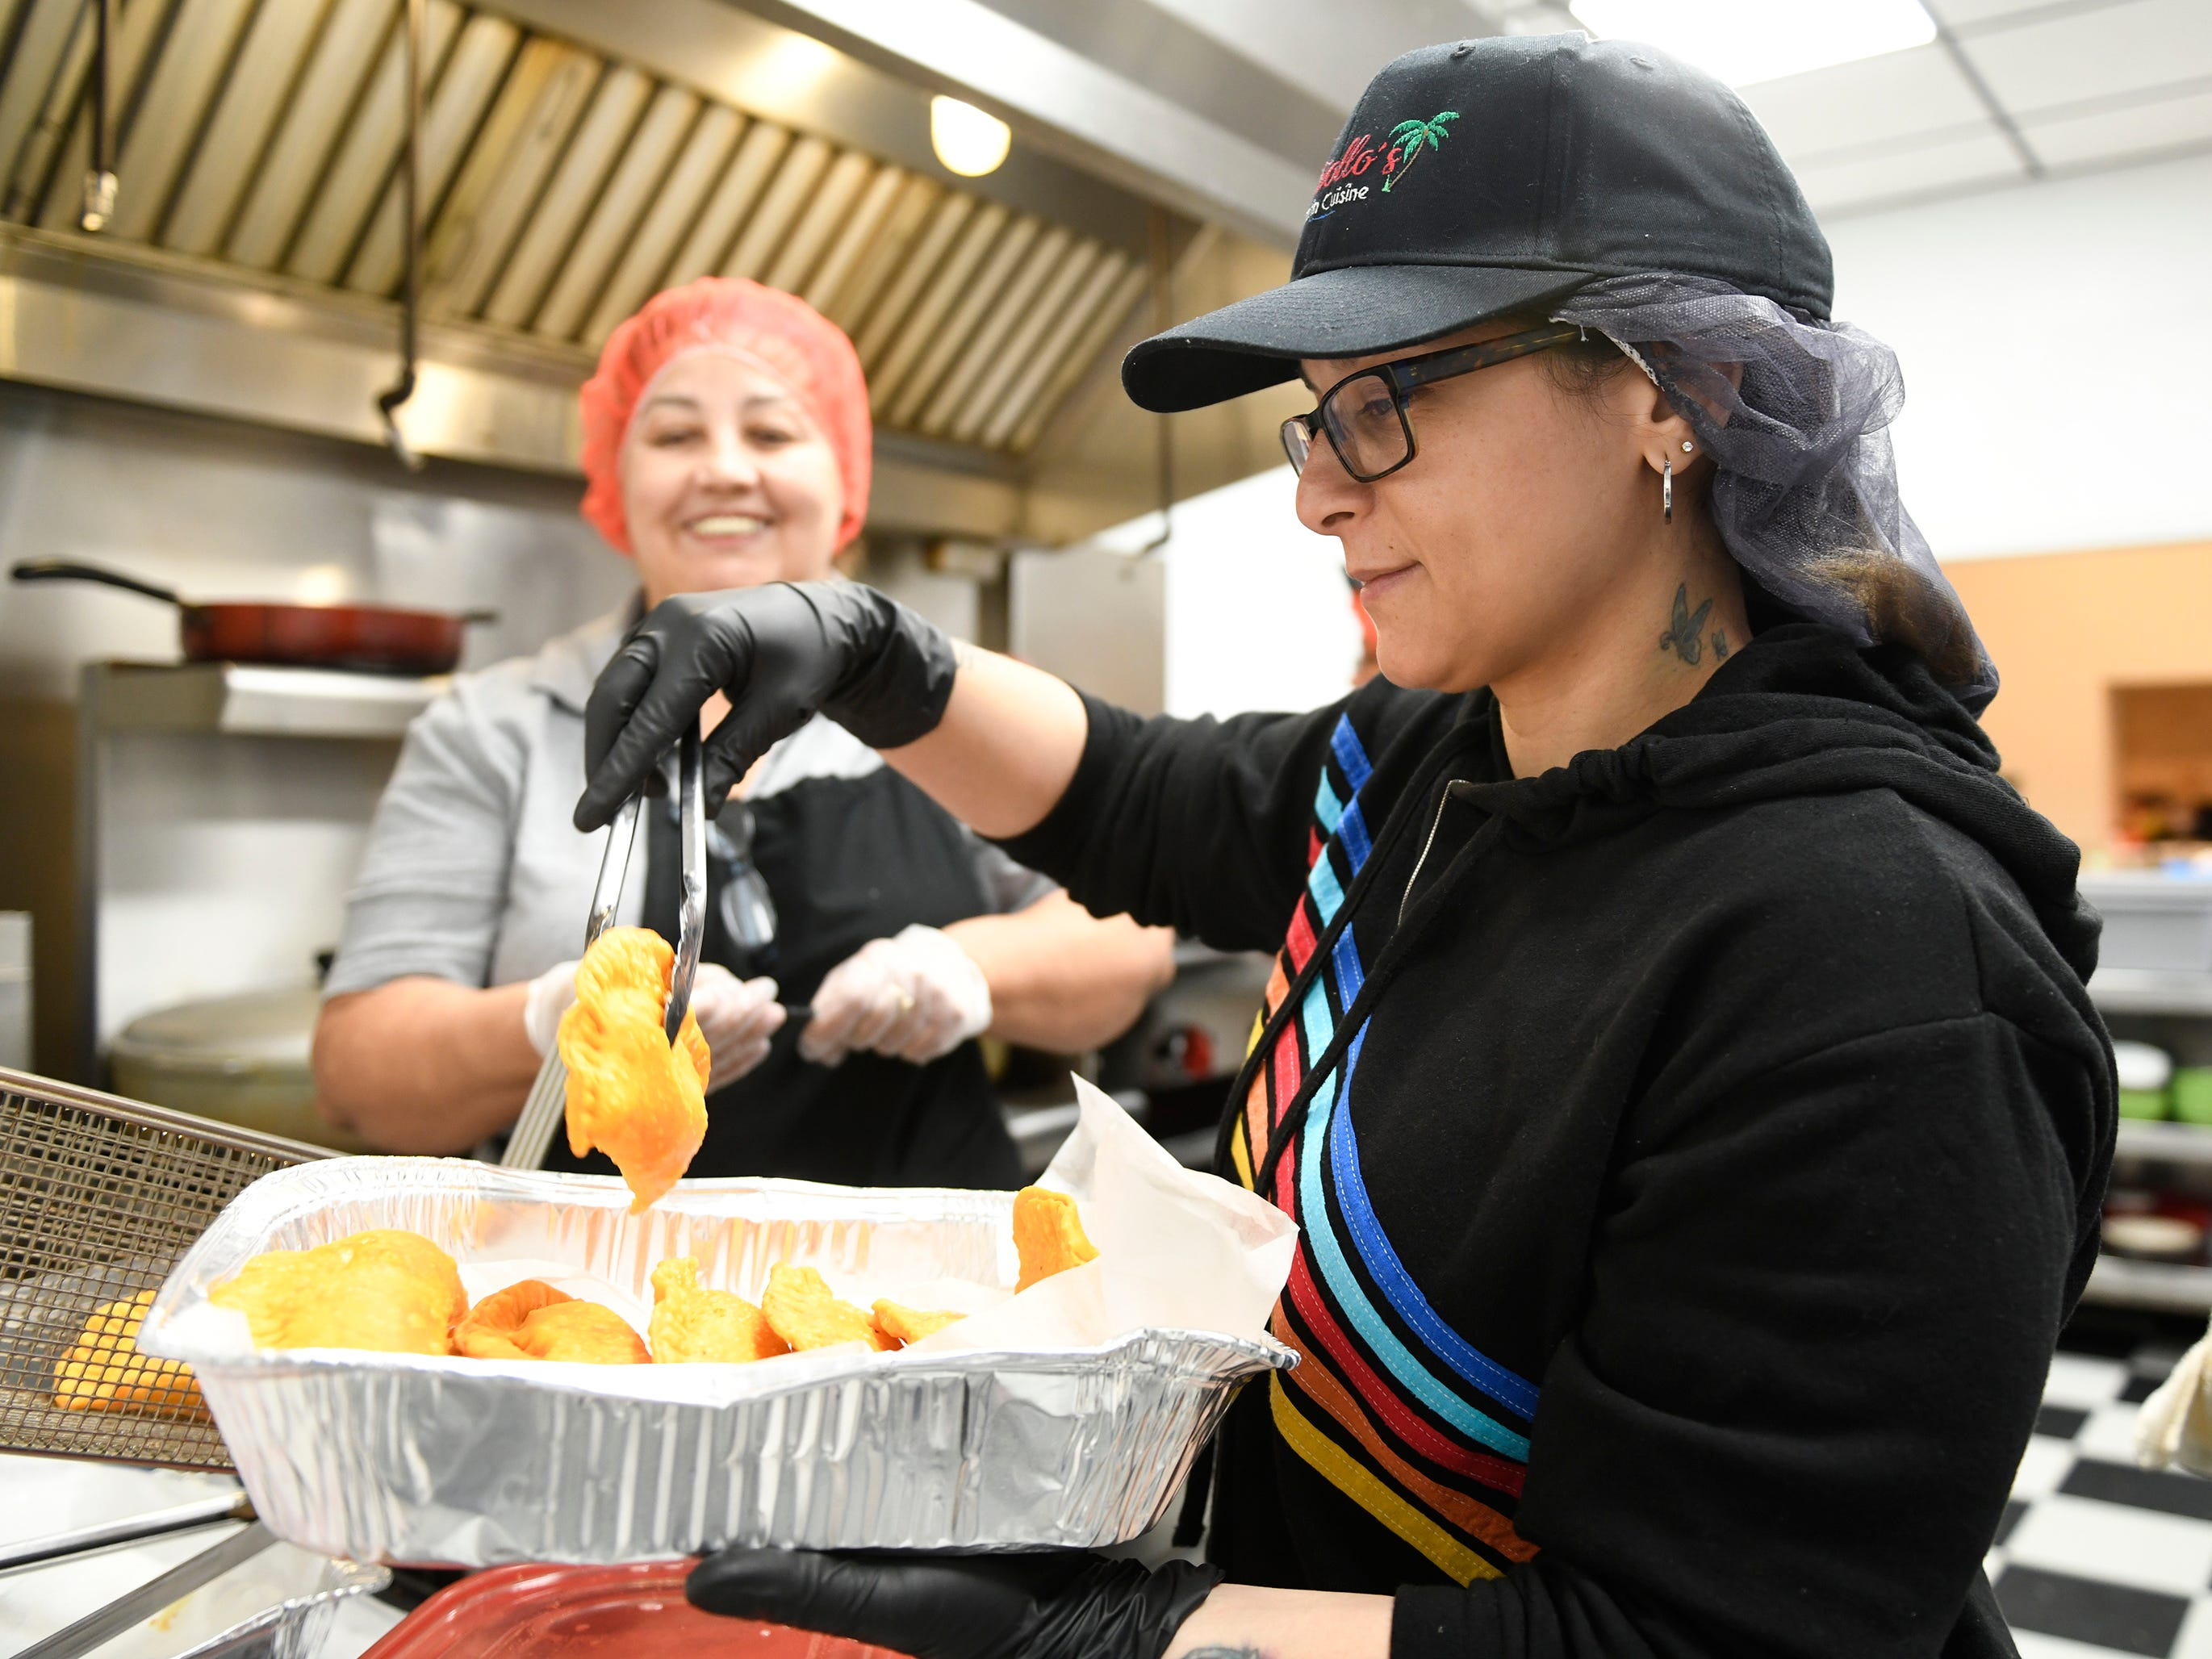 Elsie Guzman takes hot pastelillos out of the deep-fryer during the lunch time rush at Criollo's Latin Cuisine in Millville.